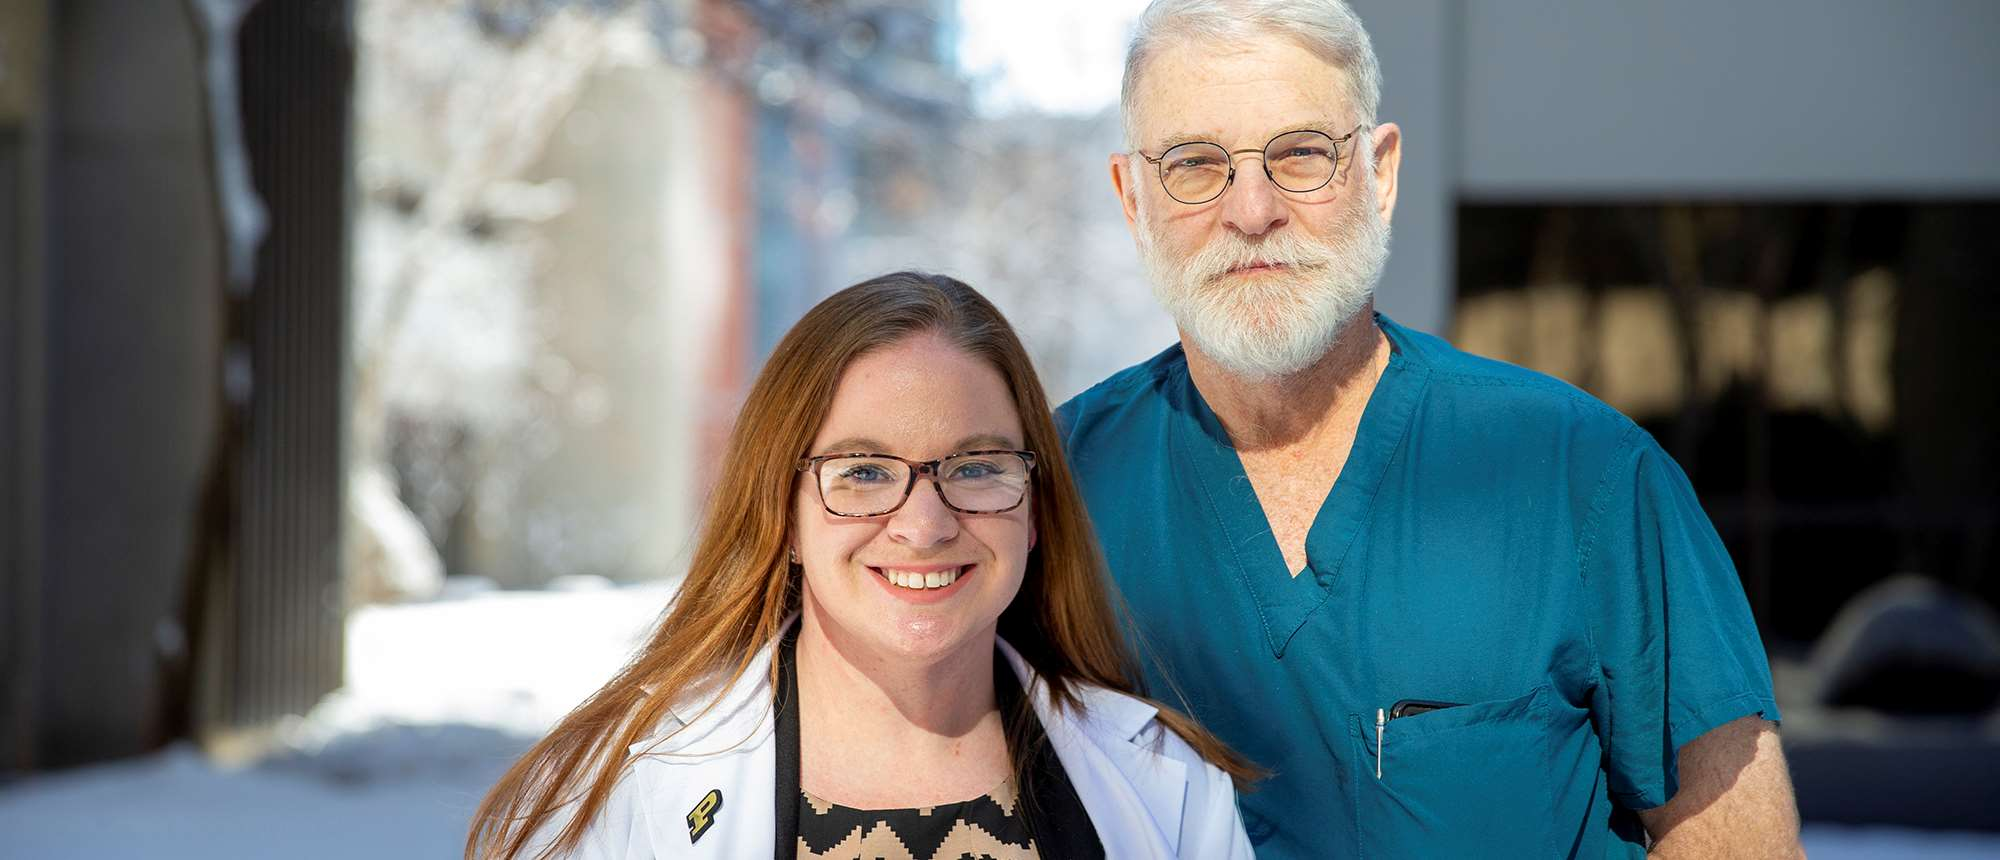 Holly Maize, second year MCW pharmacy student with Dr. Bruce A. Kaufman, MCW pediatric neurosurgeon